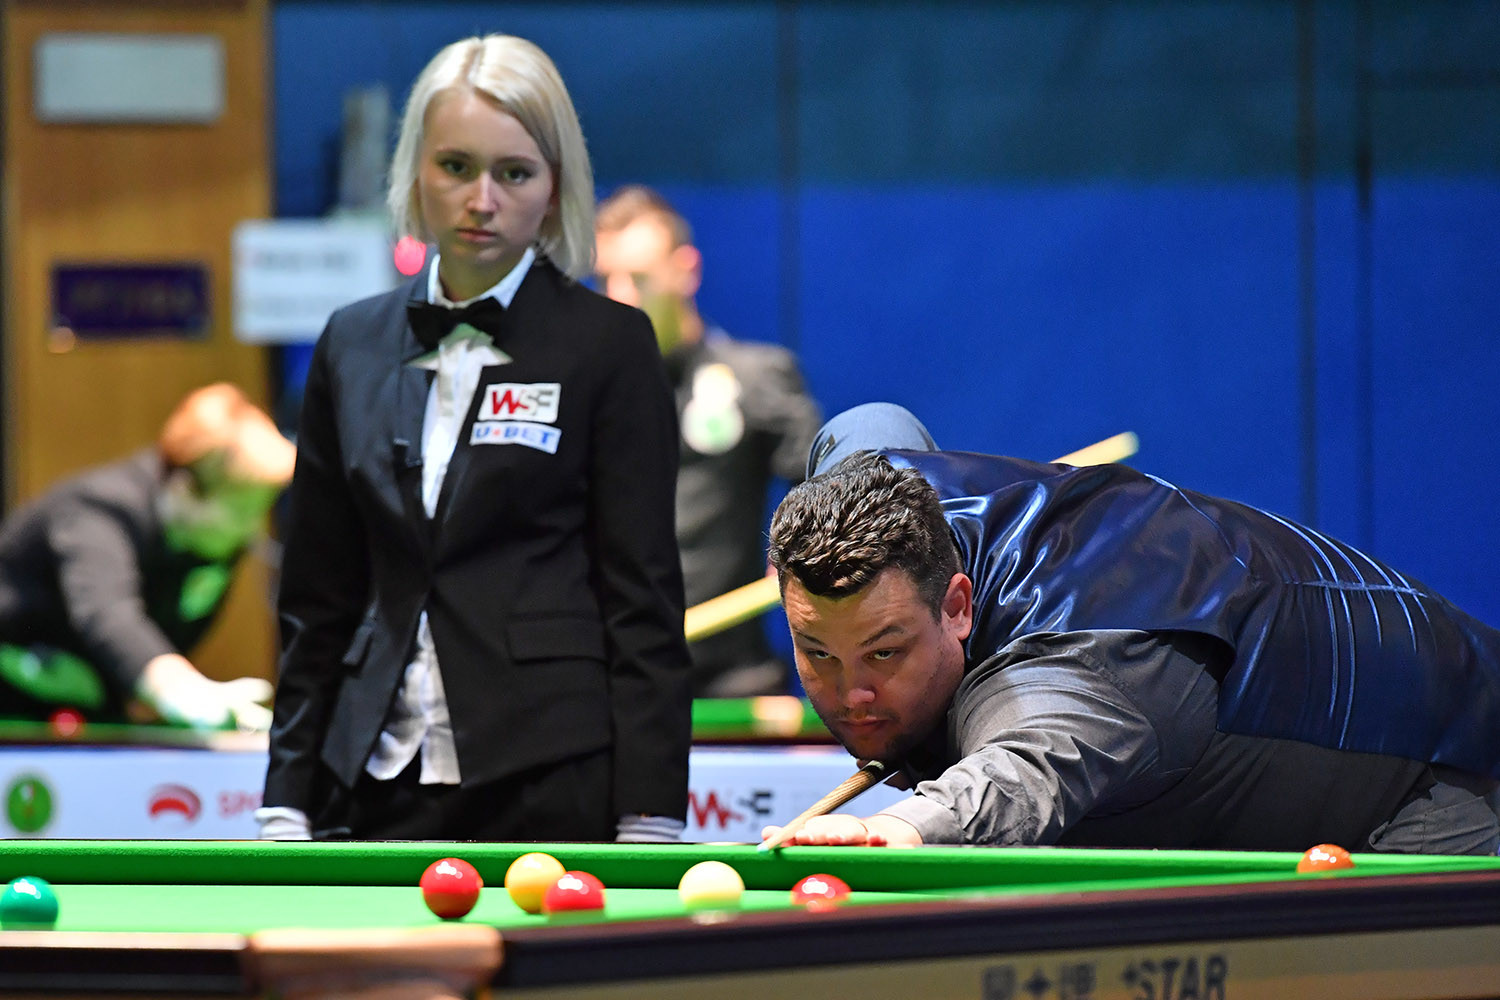 Houston's Q Ball Snooker & Pool will host the Championships ©WPBSA